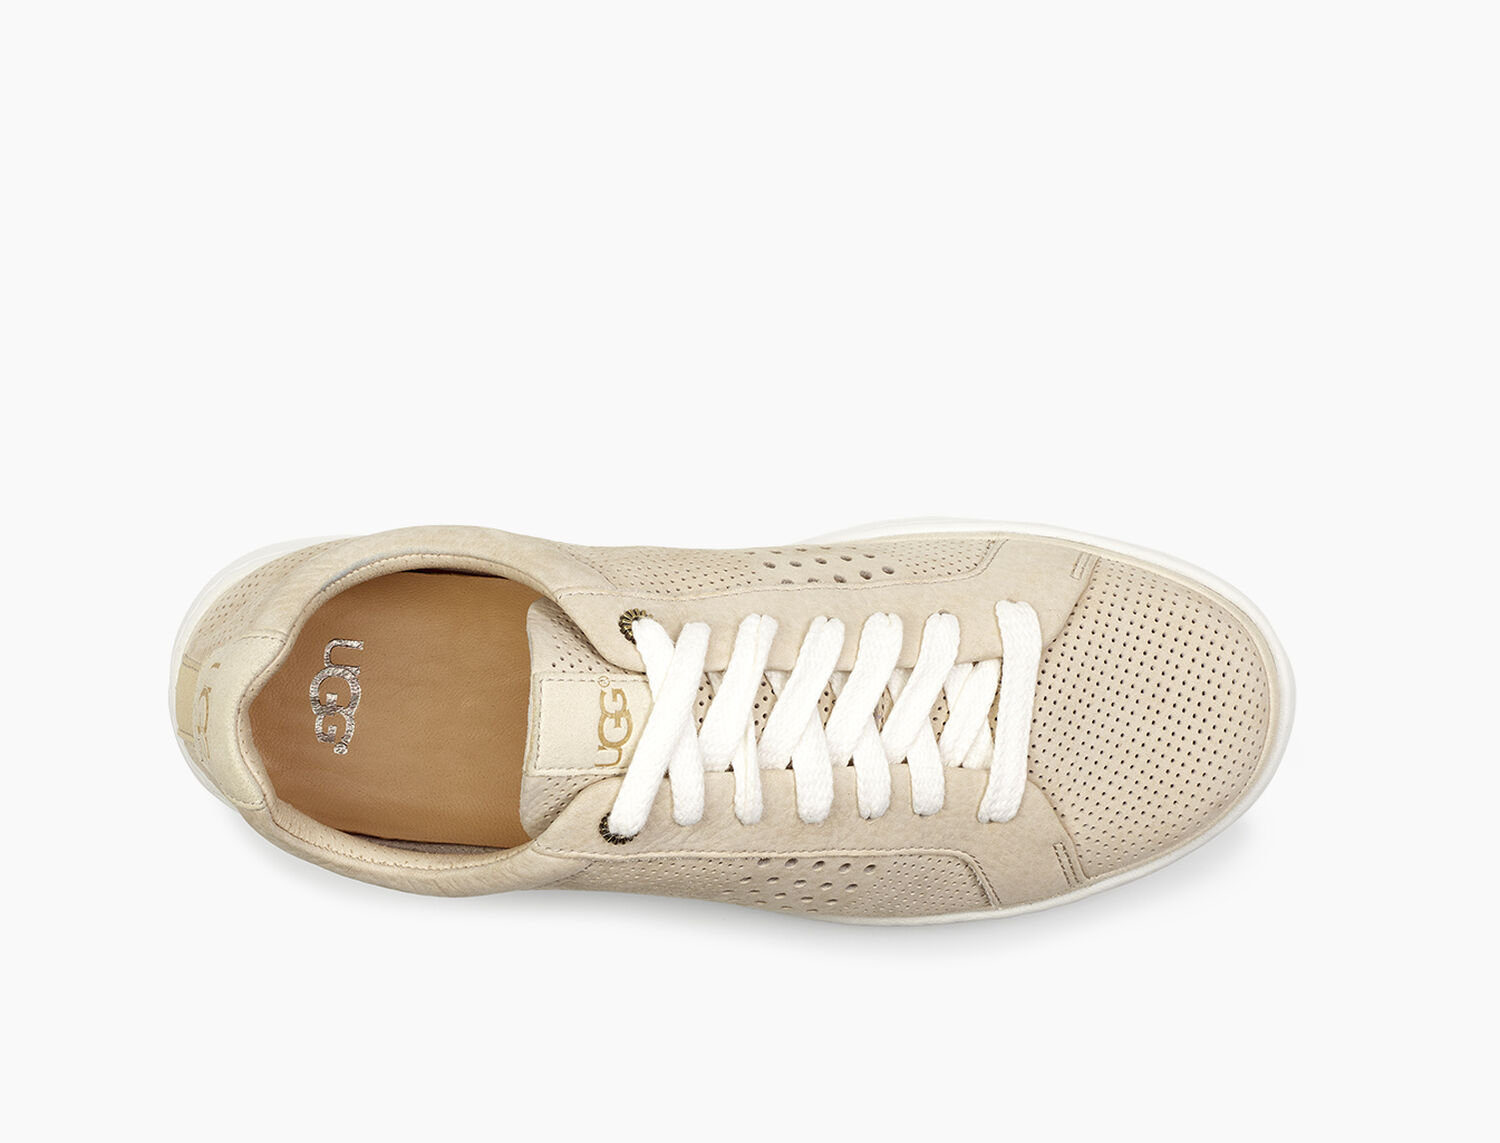 c8722e4ed67 Men's Share this product Cali Sneaker Low Perf